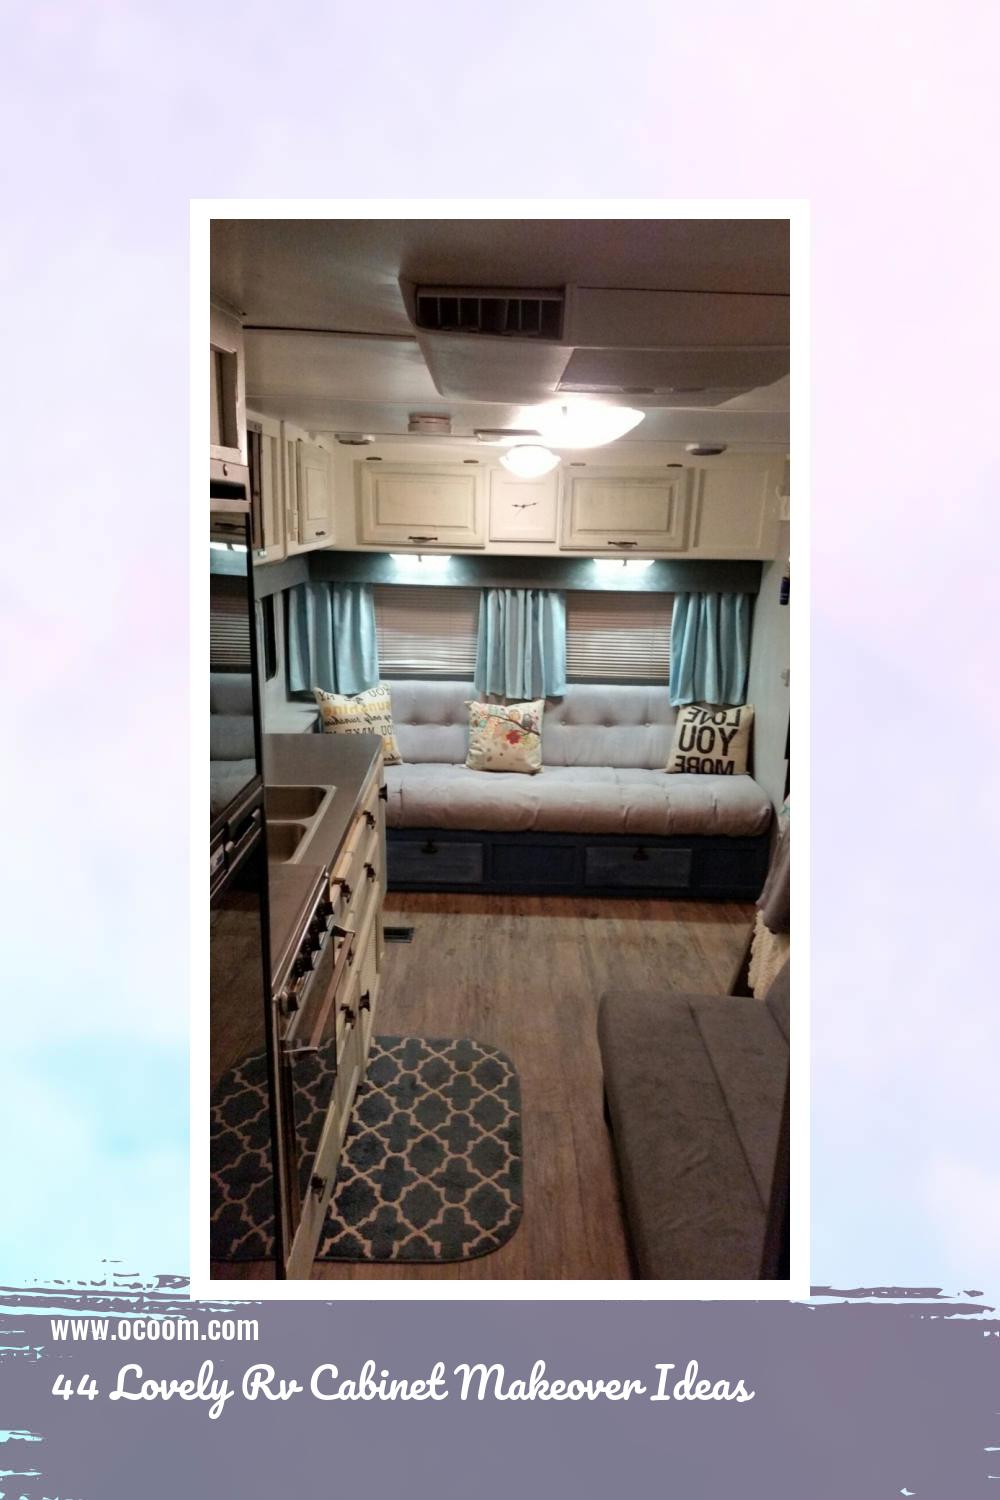 44 Lovely Rv Cabinet Makeover Ideas 3